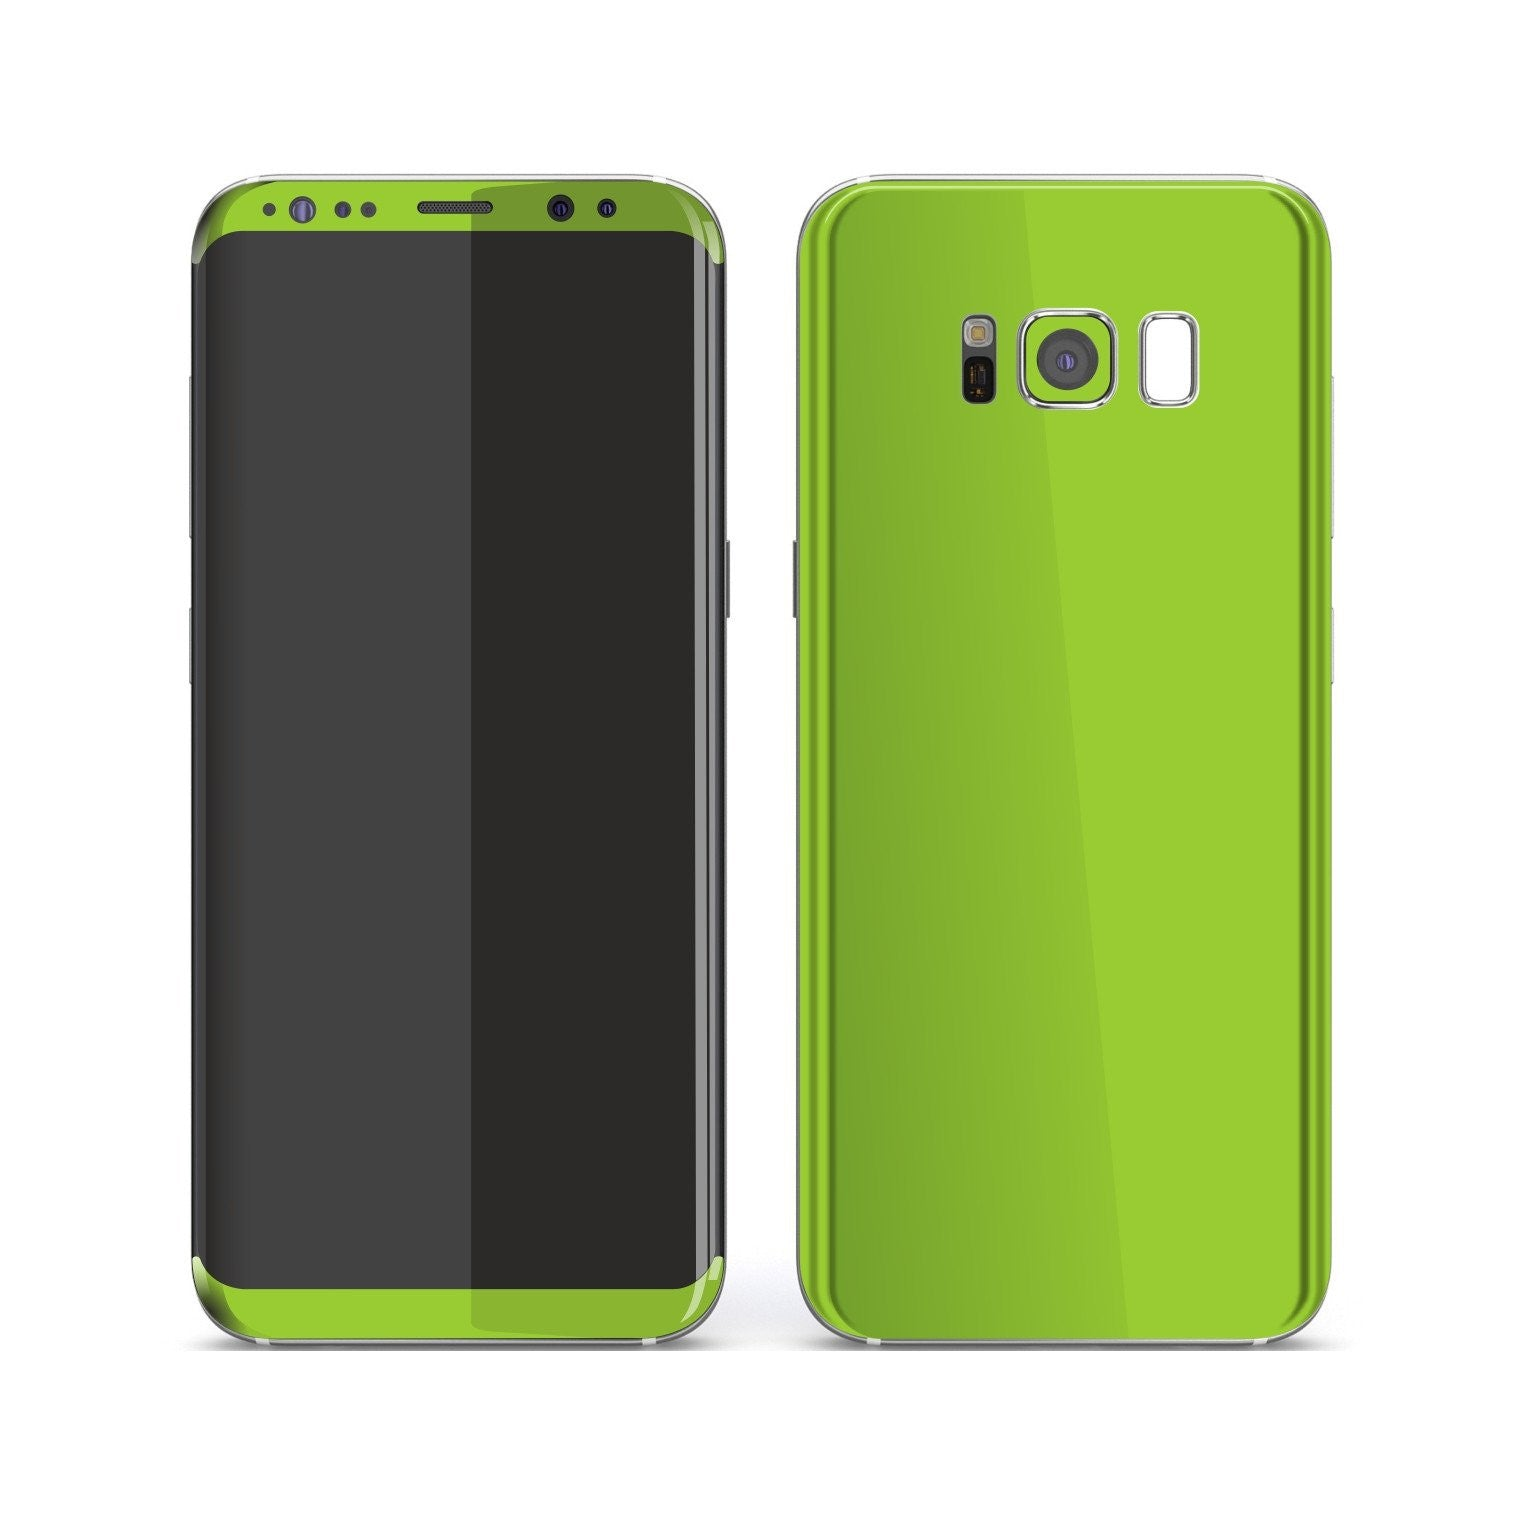 Samsung Galaxy S8+ Green Matt Skin, Decal, Wrap, Protector, Cover by EasySkinz | EasySkinz.com